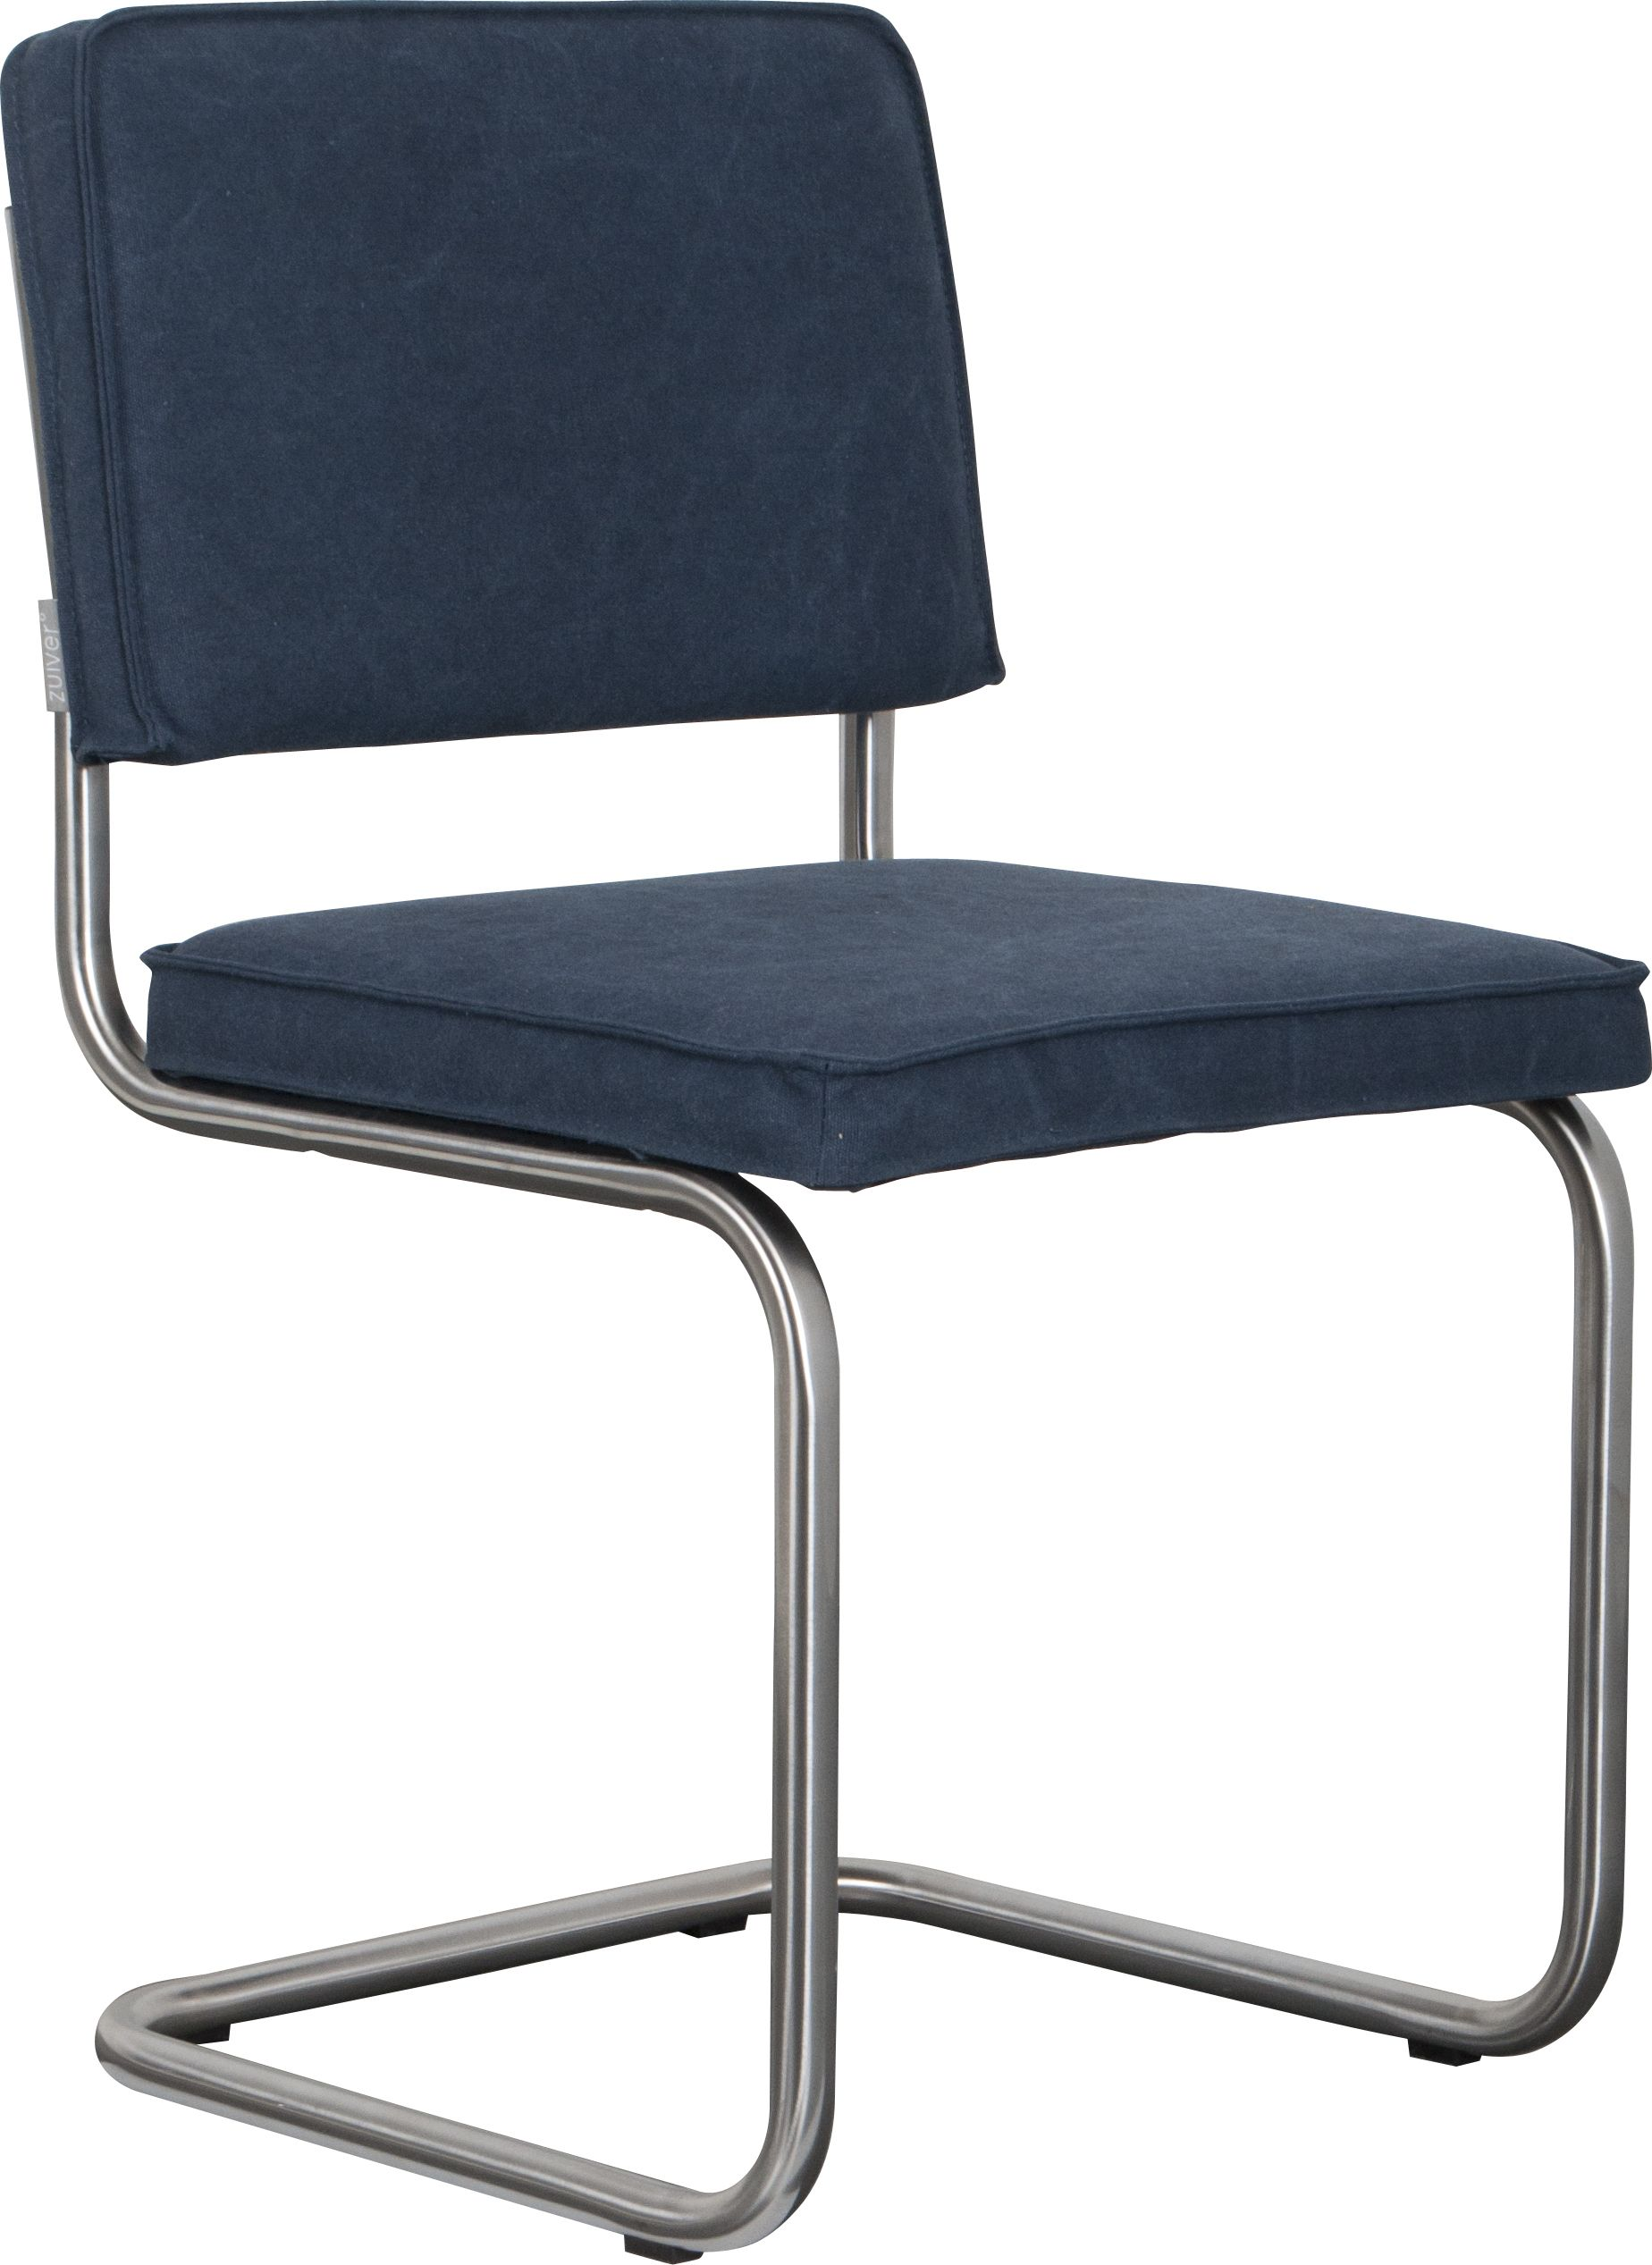 Ridge vintage brushed frame chair - Sailor Blue | Zuiver Chairs ...